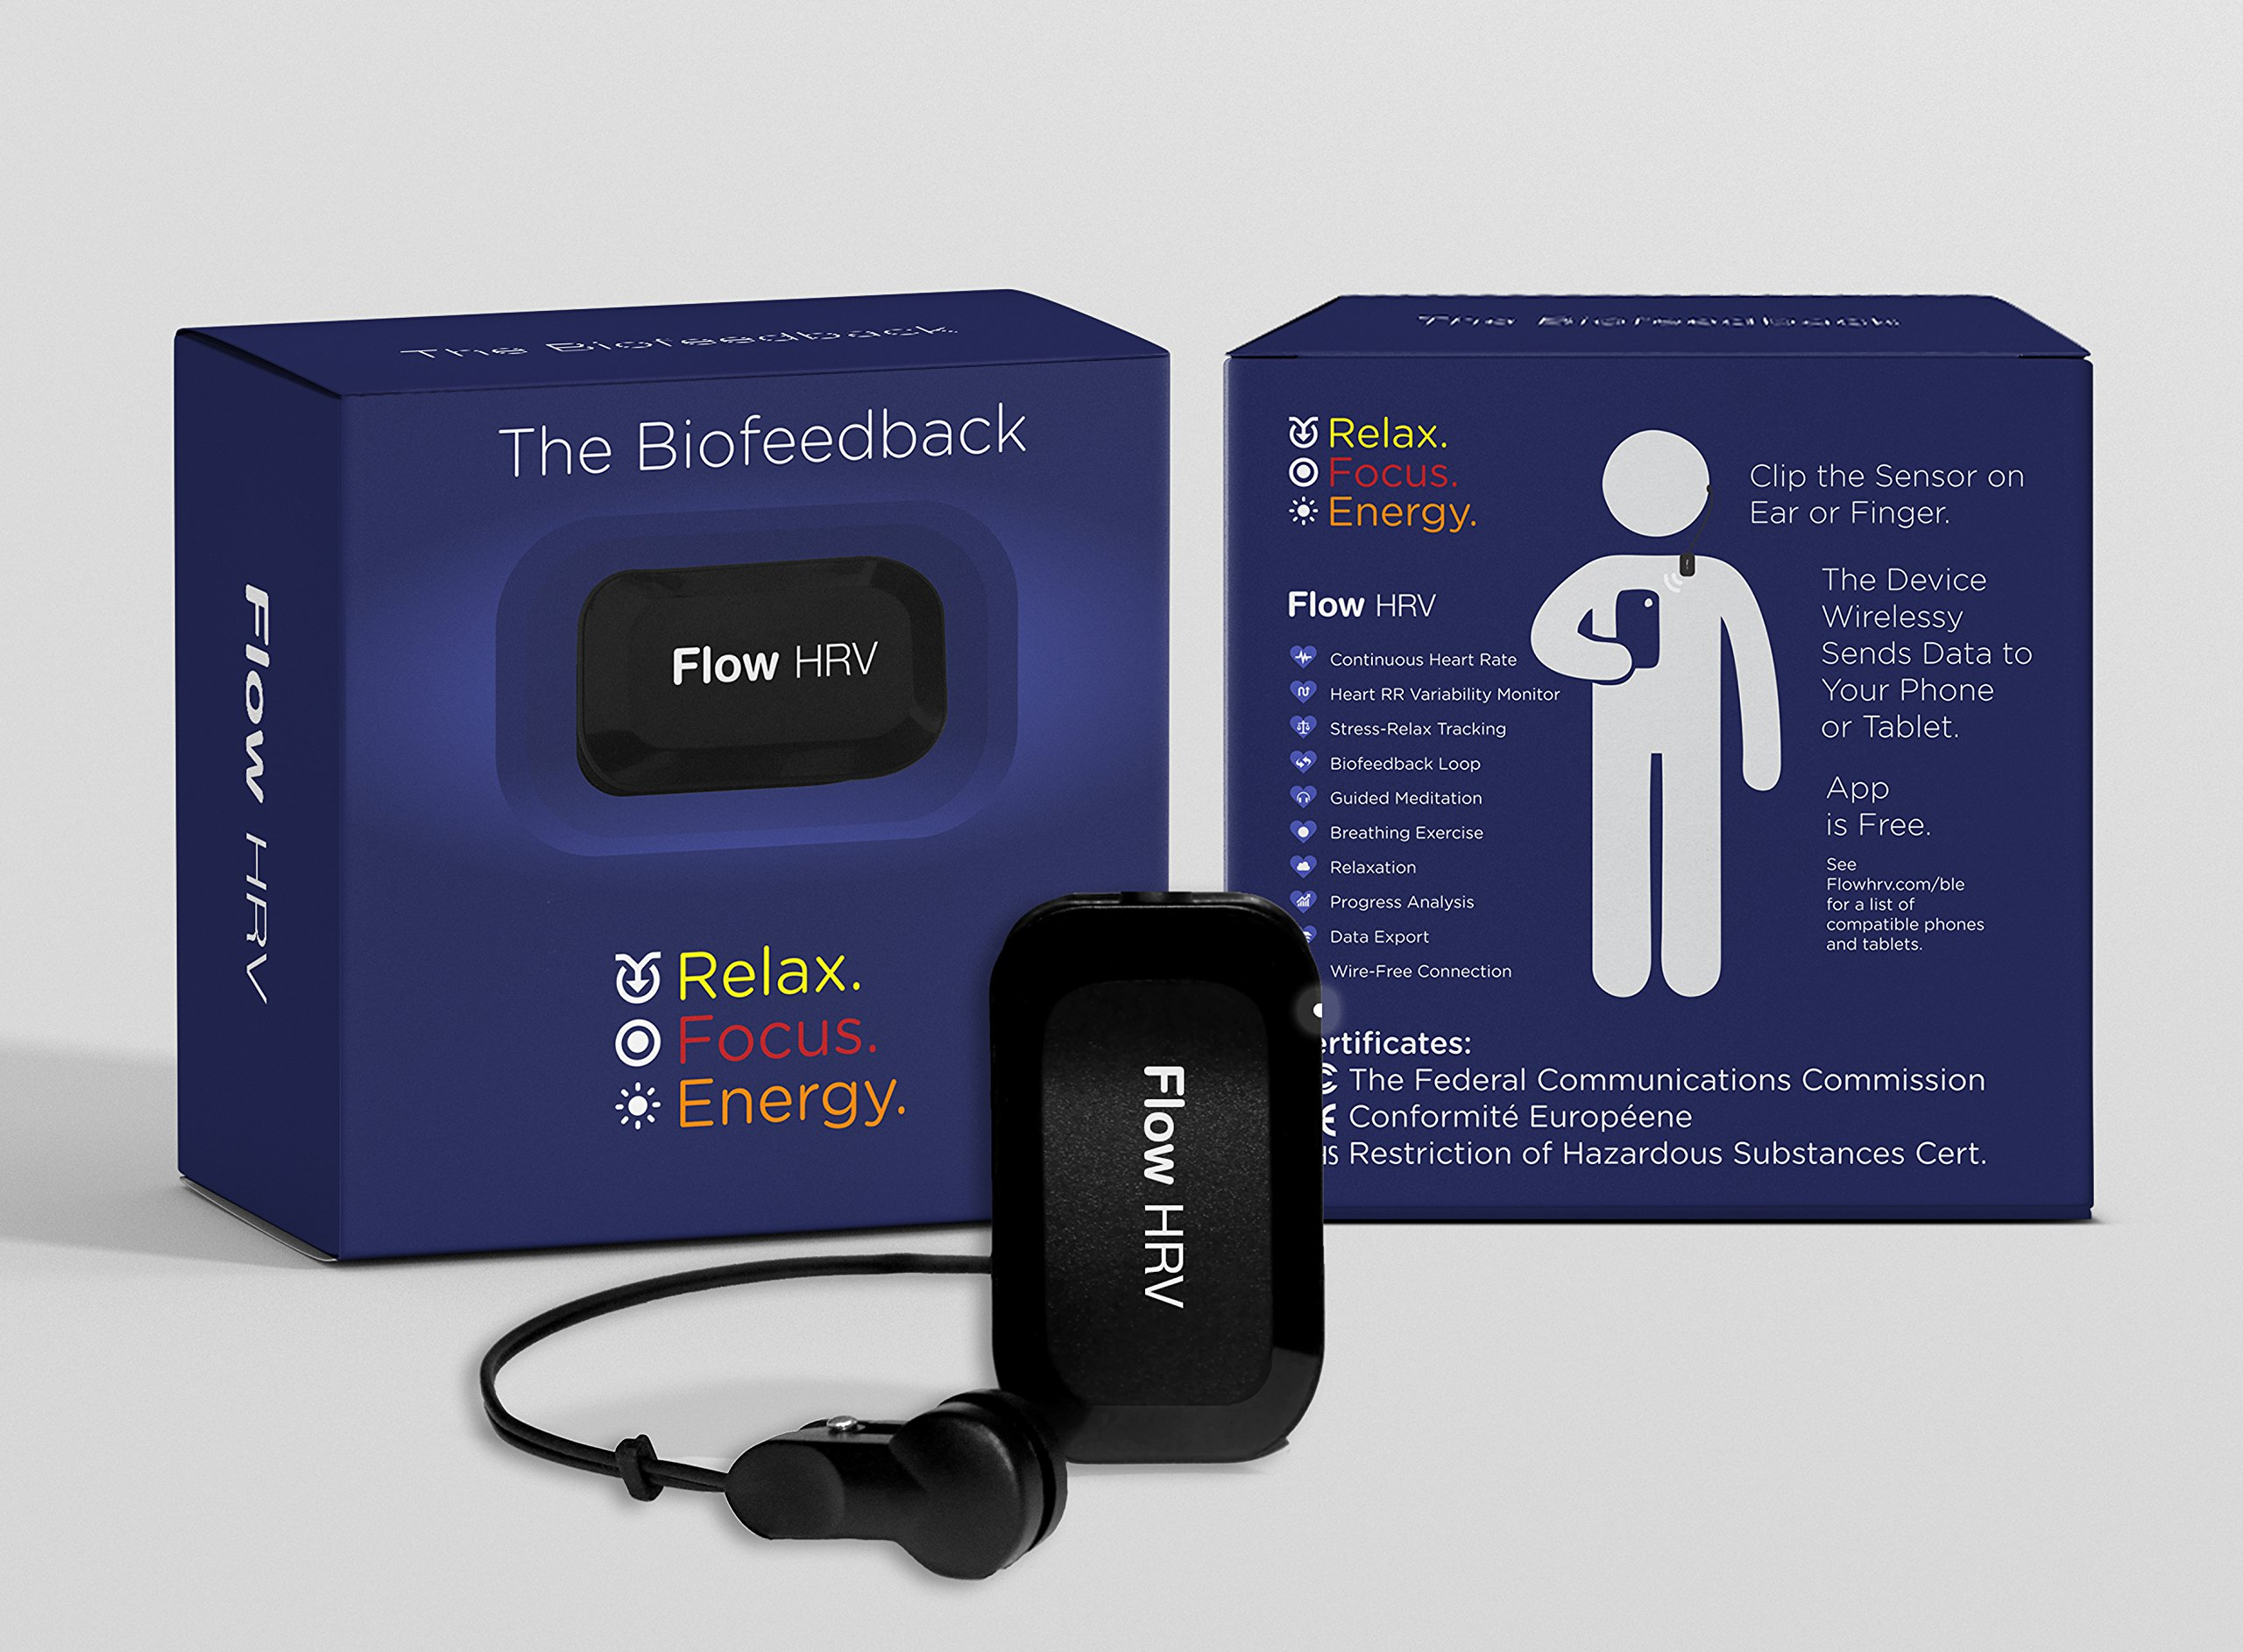 Flow HRV: Biofeedback Wireless Android Device & Games for Meditation, Relaxation and Focus Traning by Flow HRV